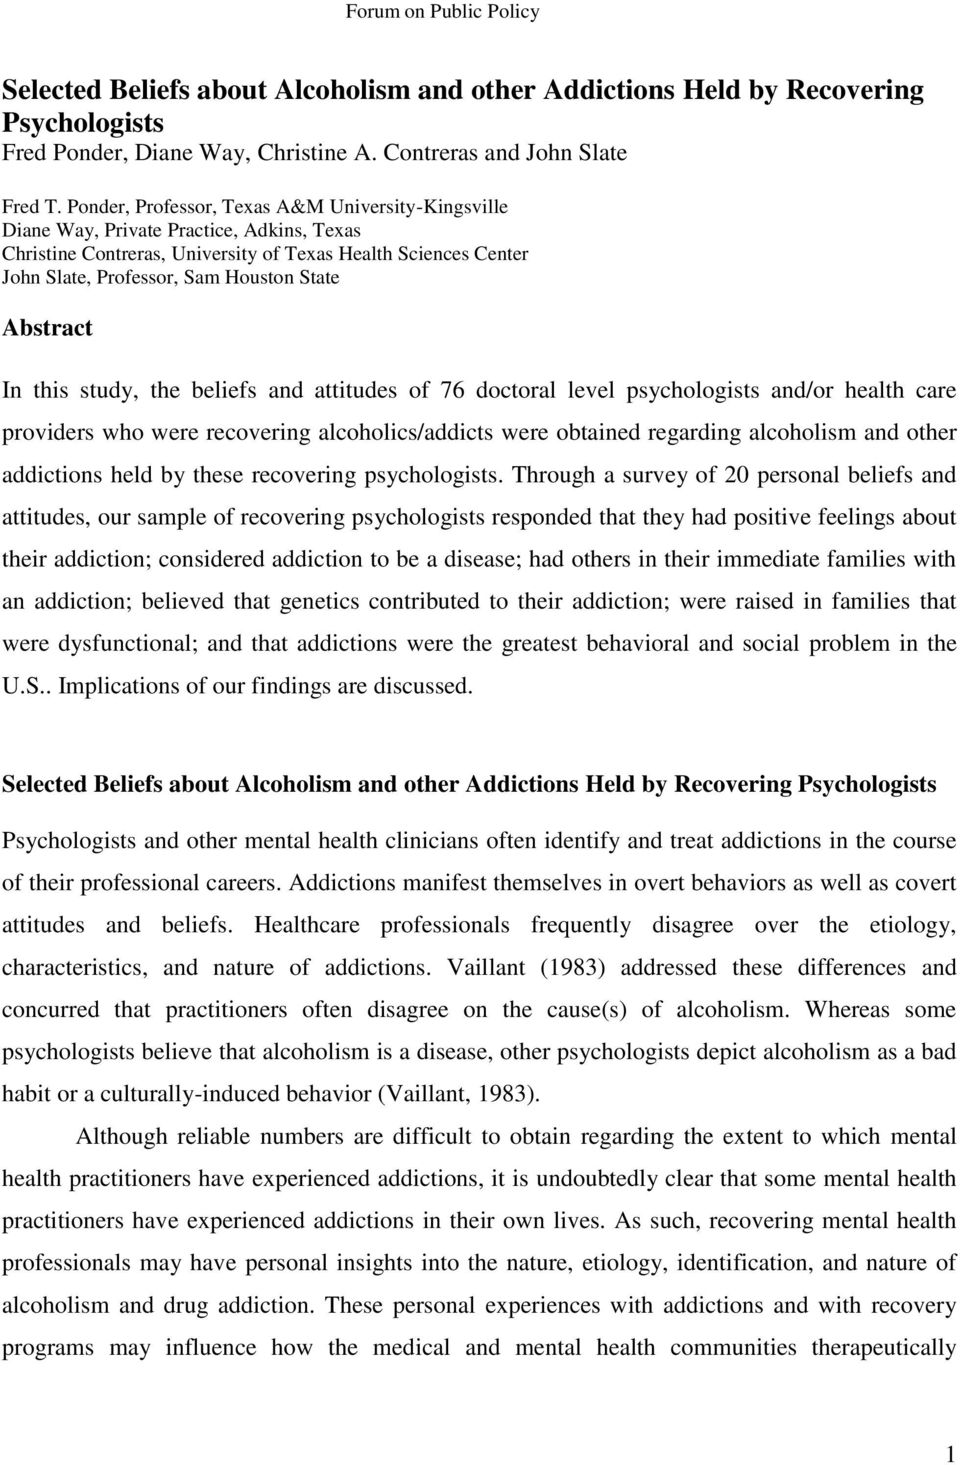 Abstract In this study, the beliefs and attitudes of 76 doctoral level psychologists and/or health care providers who were recovering alcoholics/addicts were obtained regarding alcoholism and other